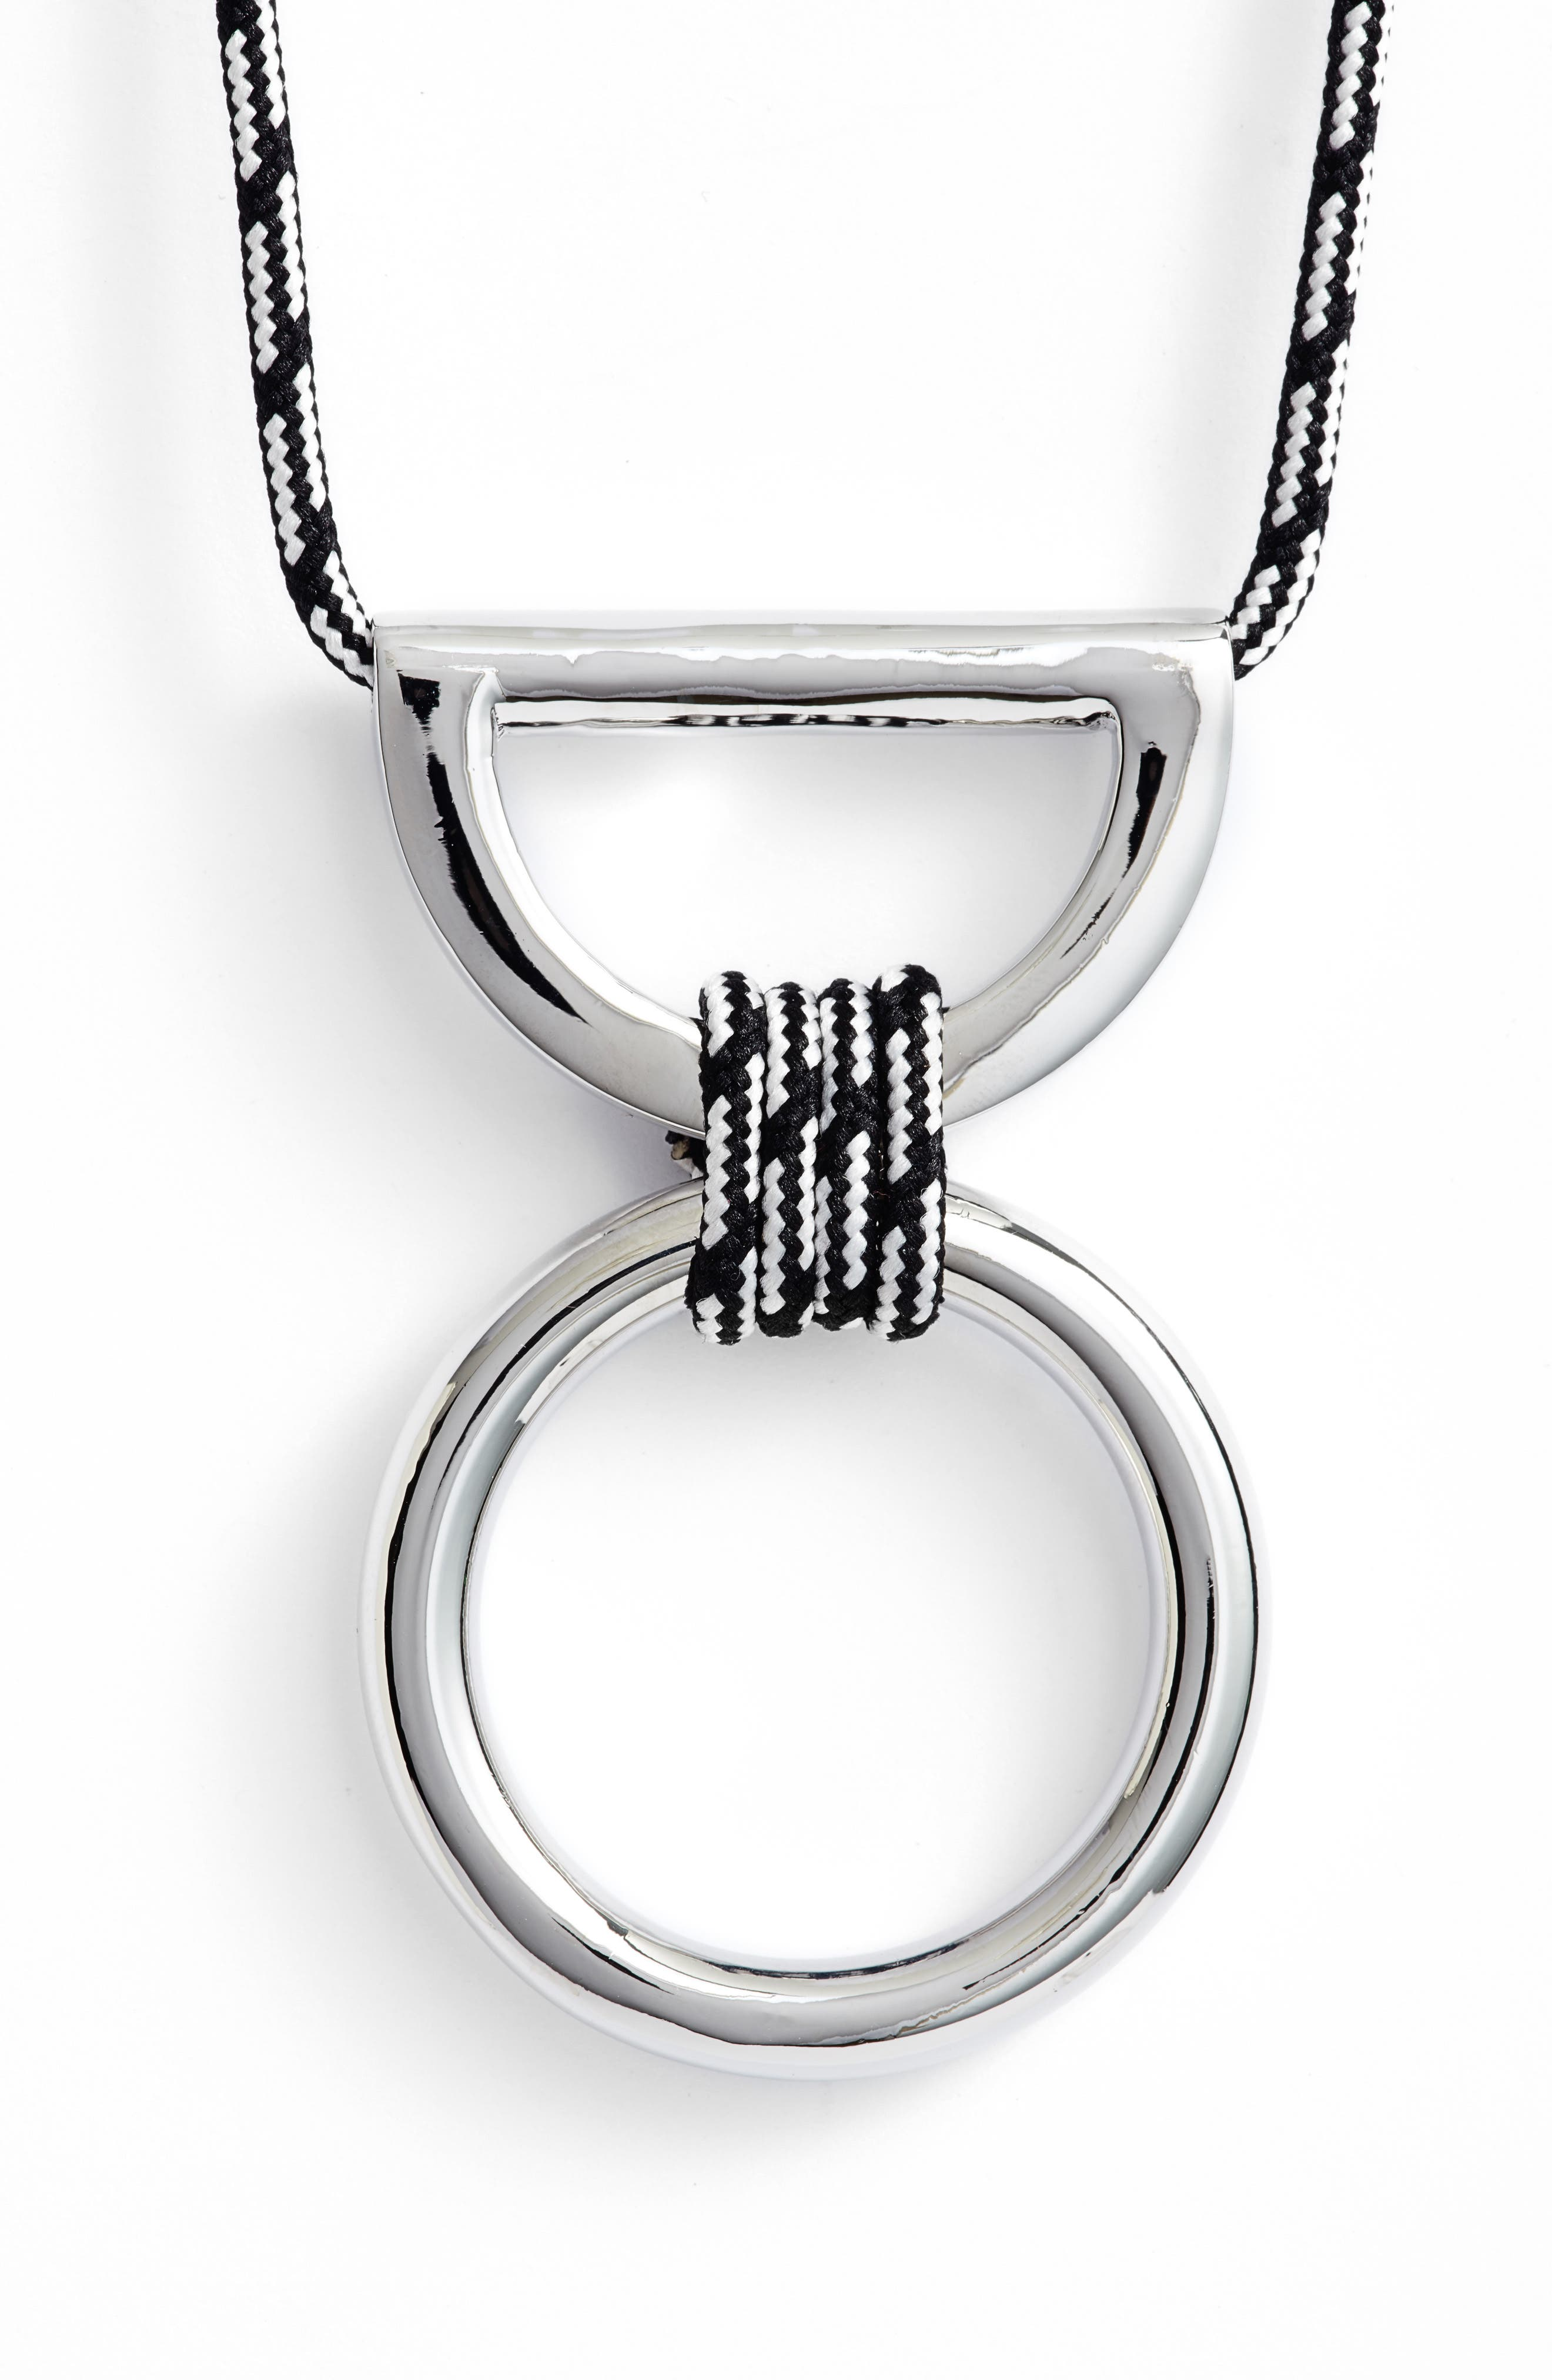 Climbing Rope Pendant Necklace,                             Alternate thumbnail 3, color,                             001